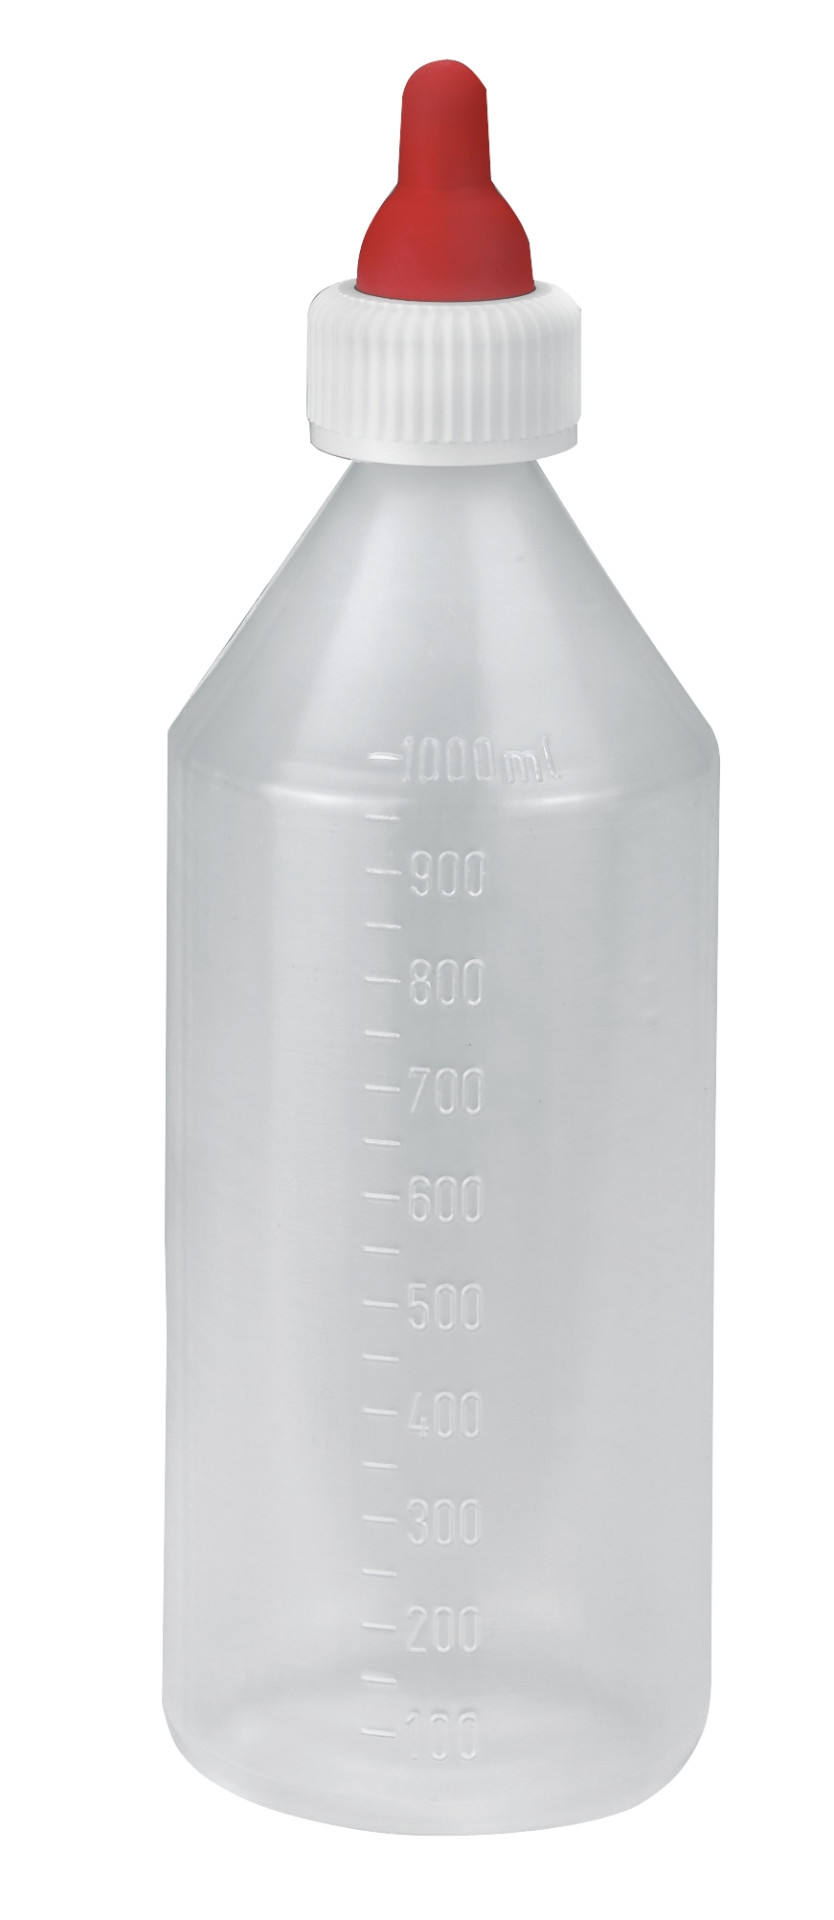 Lam/veulen speenfles flexi 1000 ml